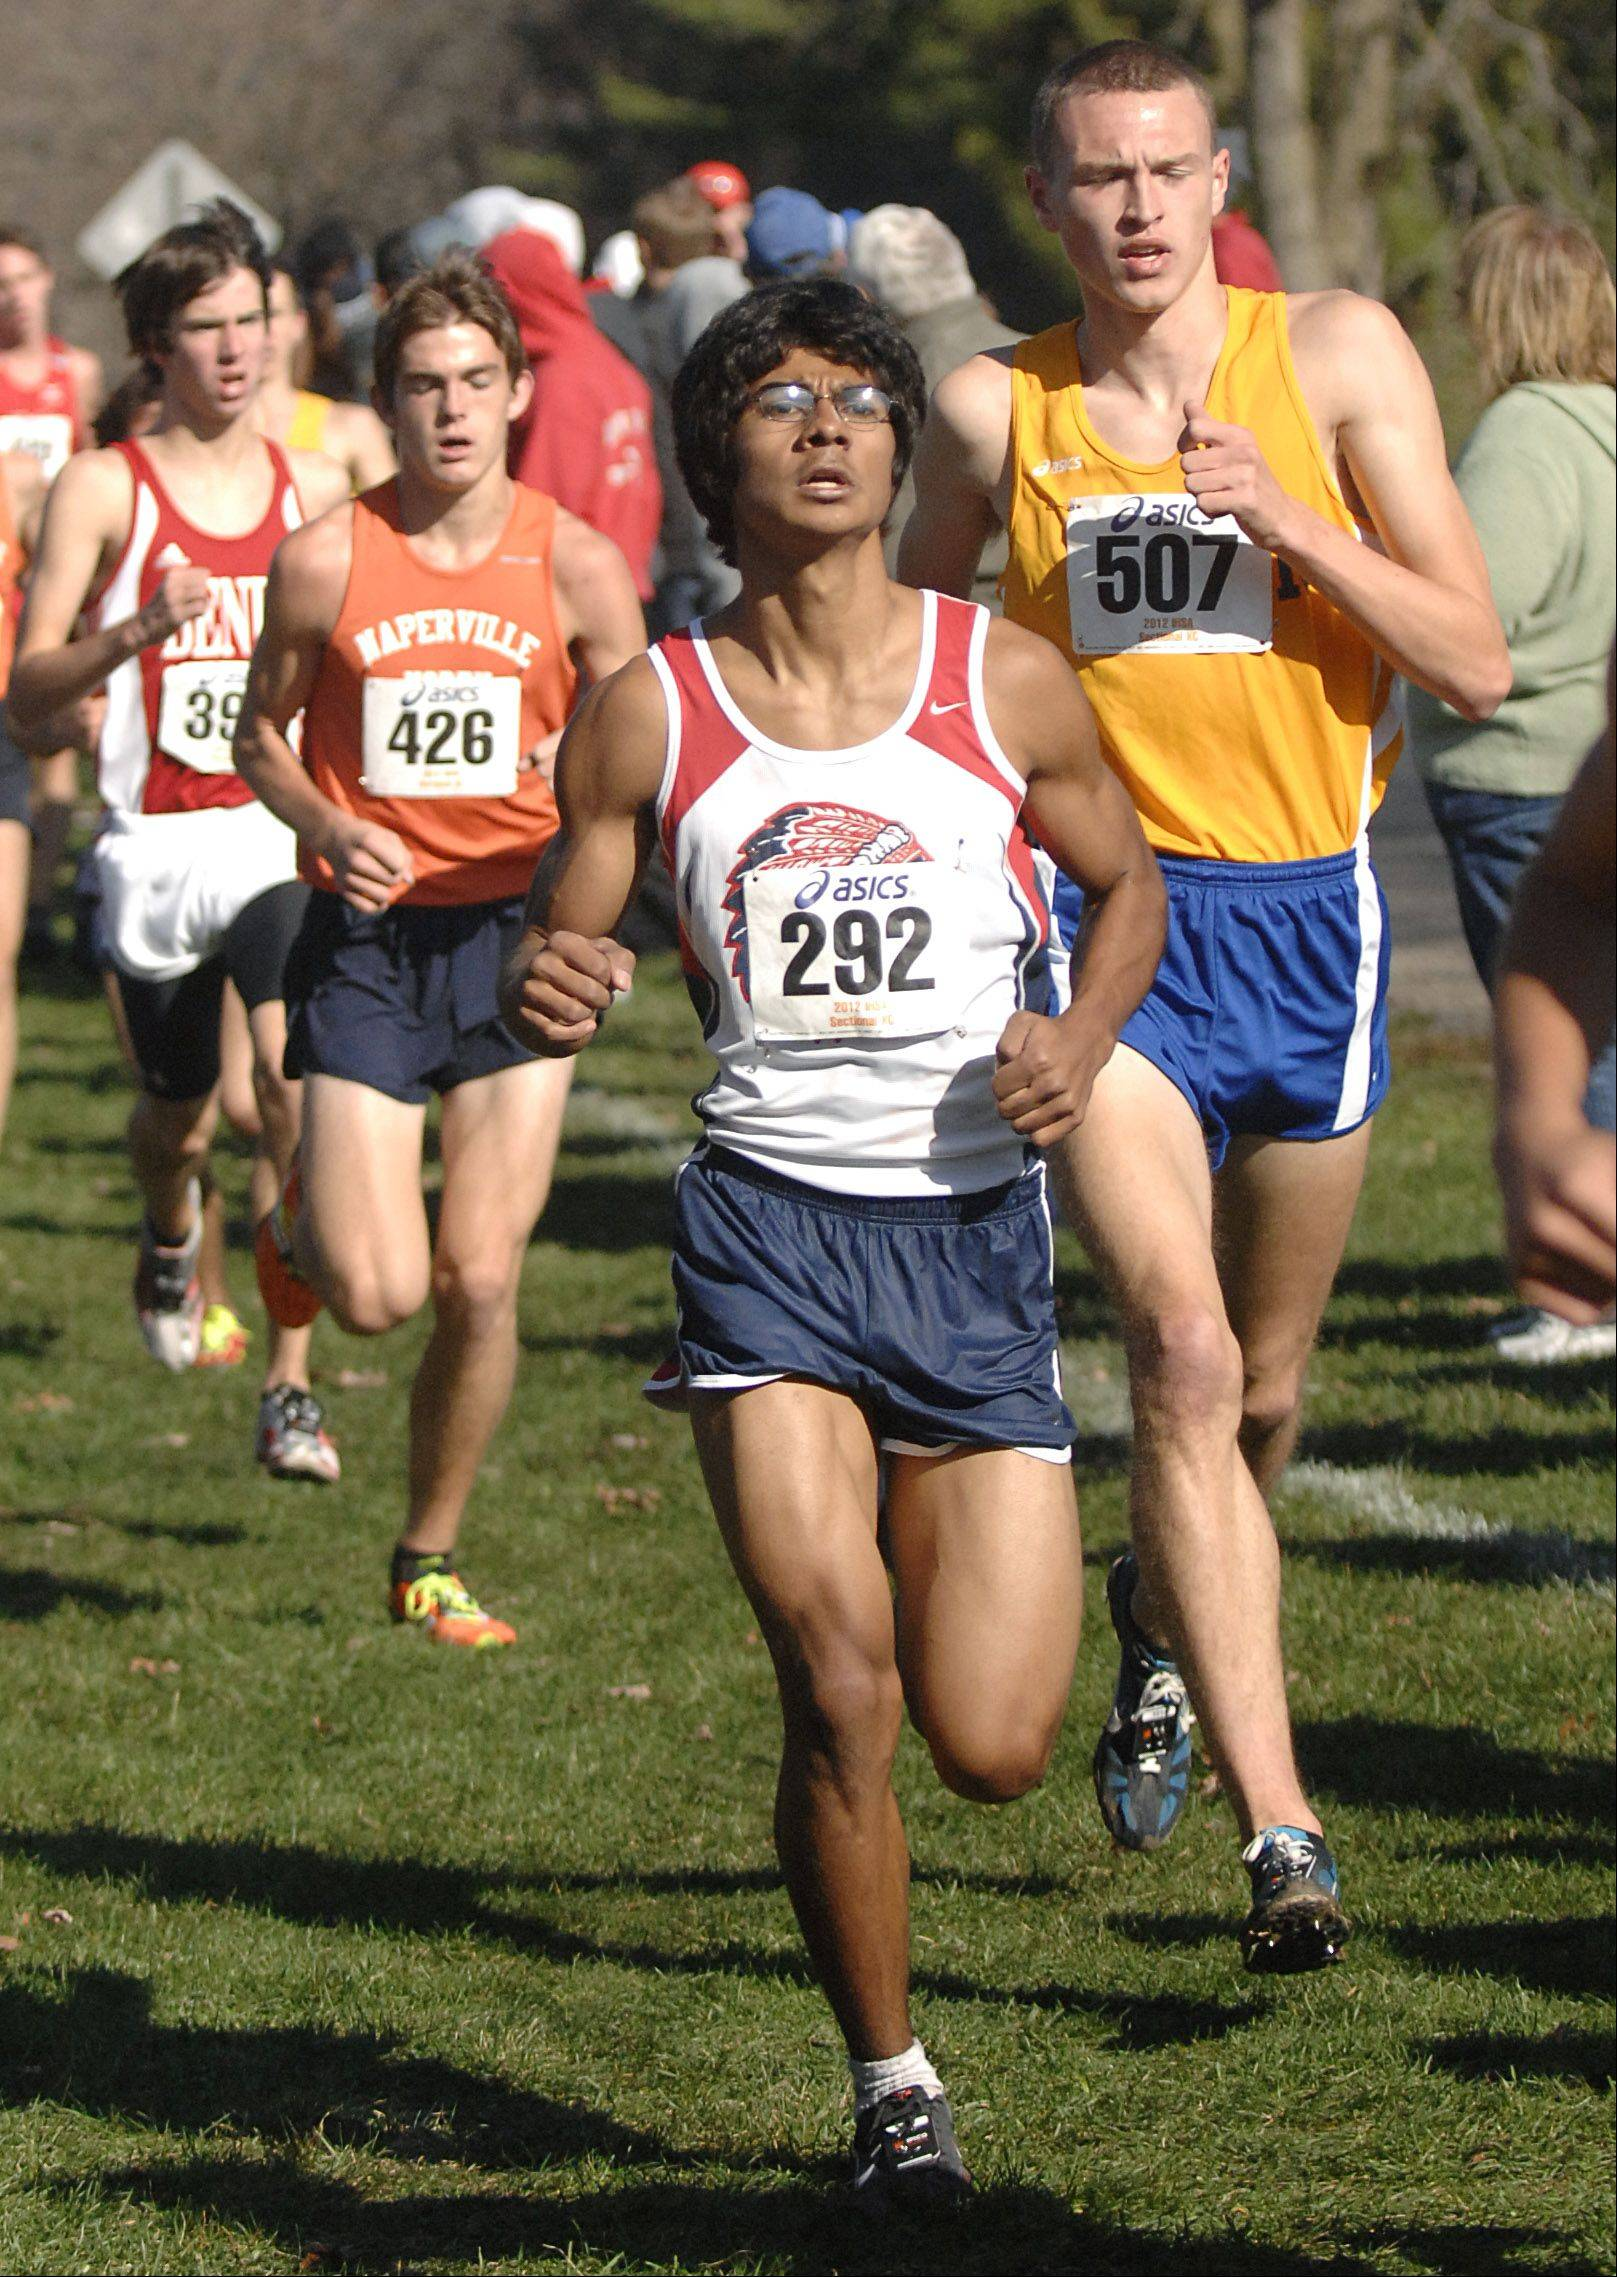 West Aurora's Robbie Herrera near the mile and half mark in the St. Charles East cross country sectional at LeRoy Oakes in St. Charles on Saturday, October 27.